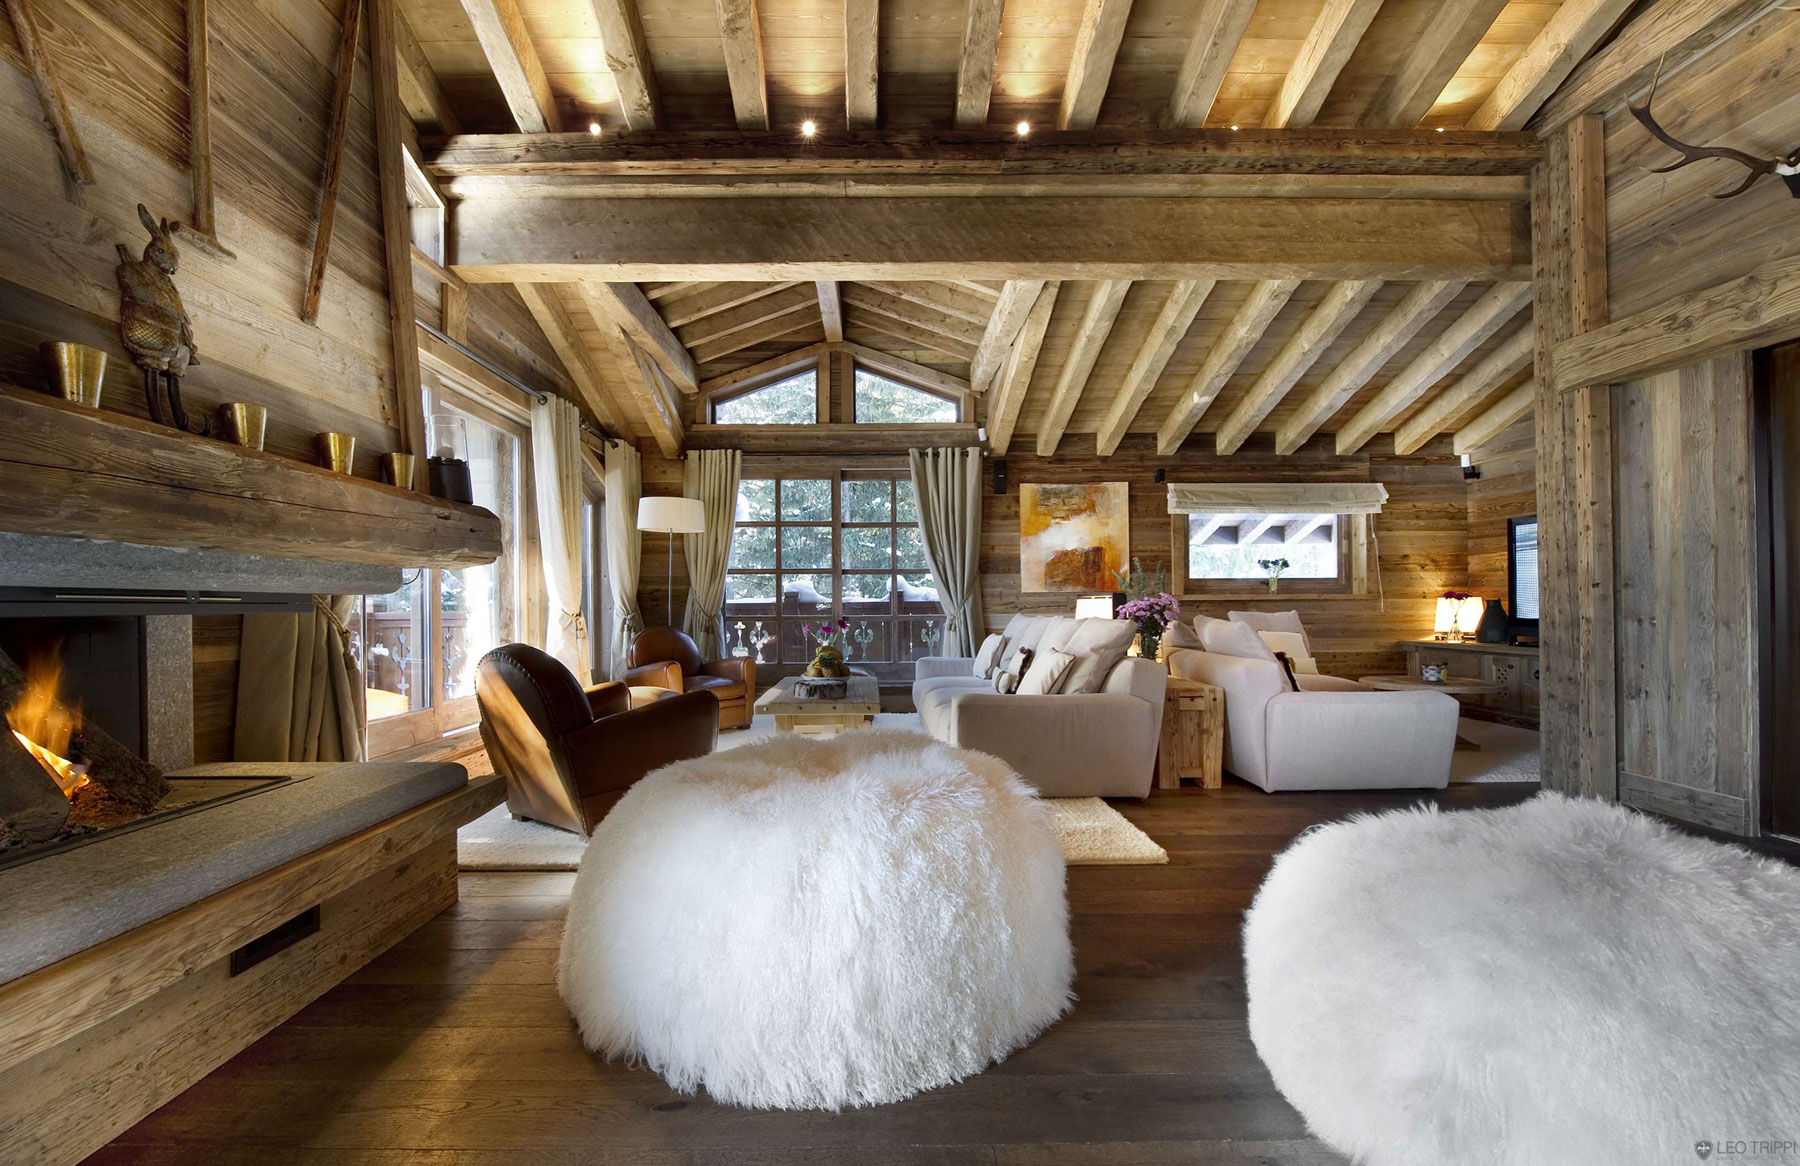 Chalet Les Gentianes 1850 in Courchevel, the French Alps (3)